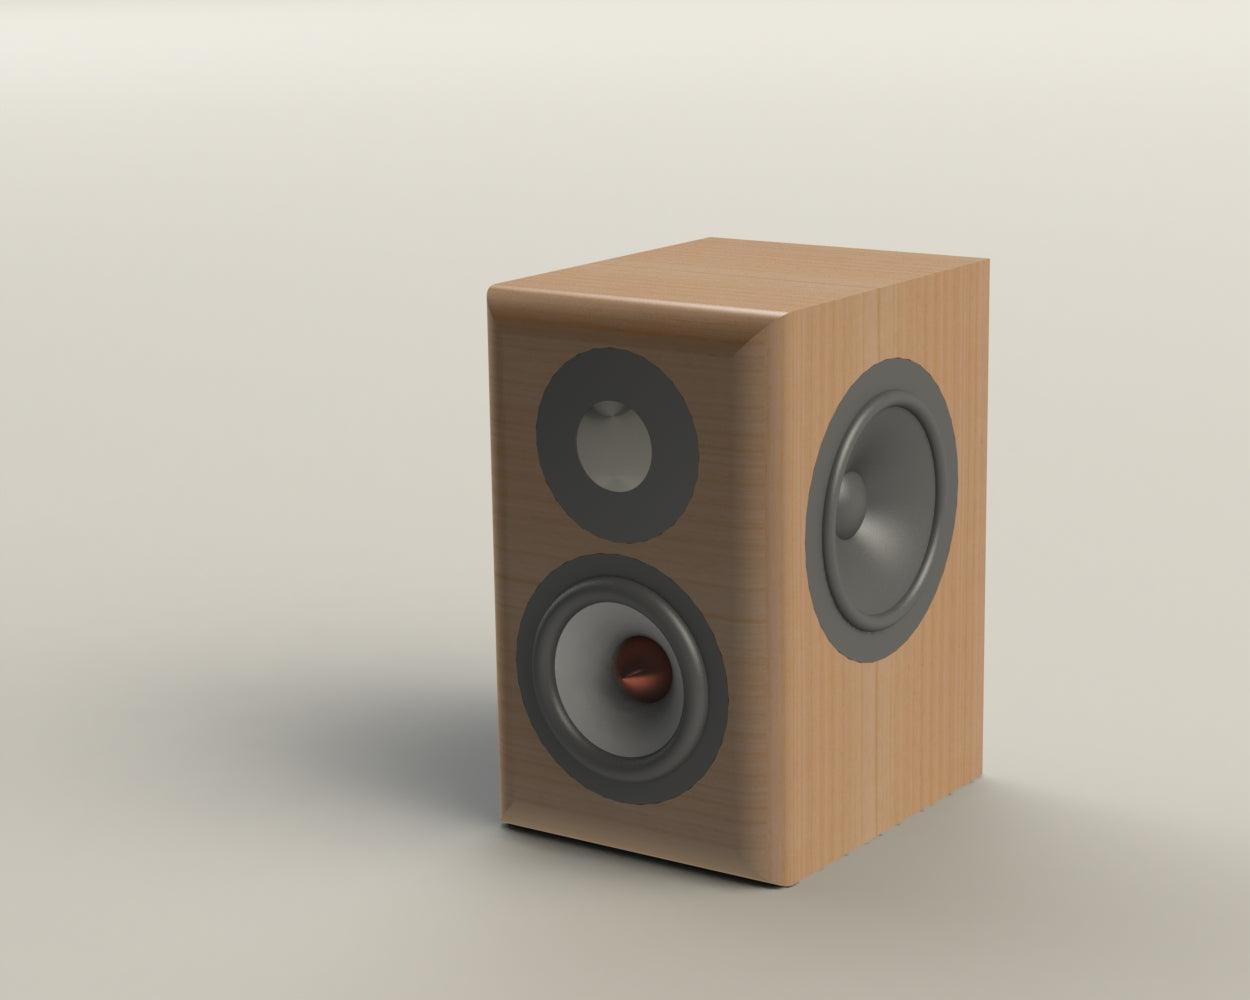 Flat Pack Speaker Cabinet for Mr. Patrick